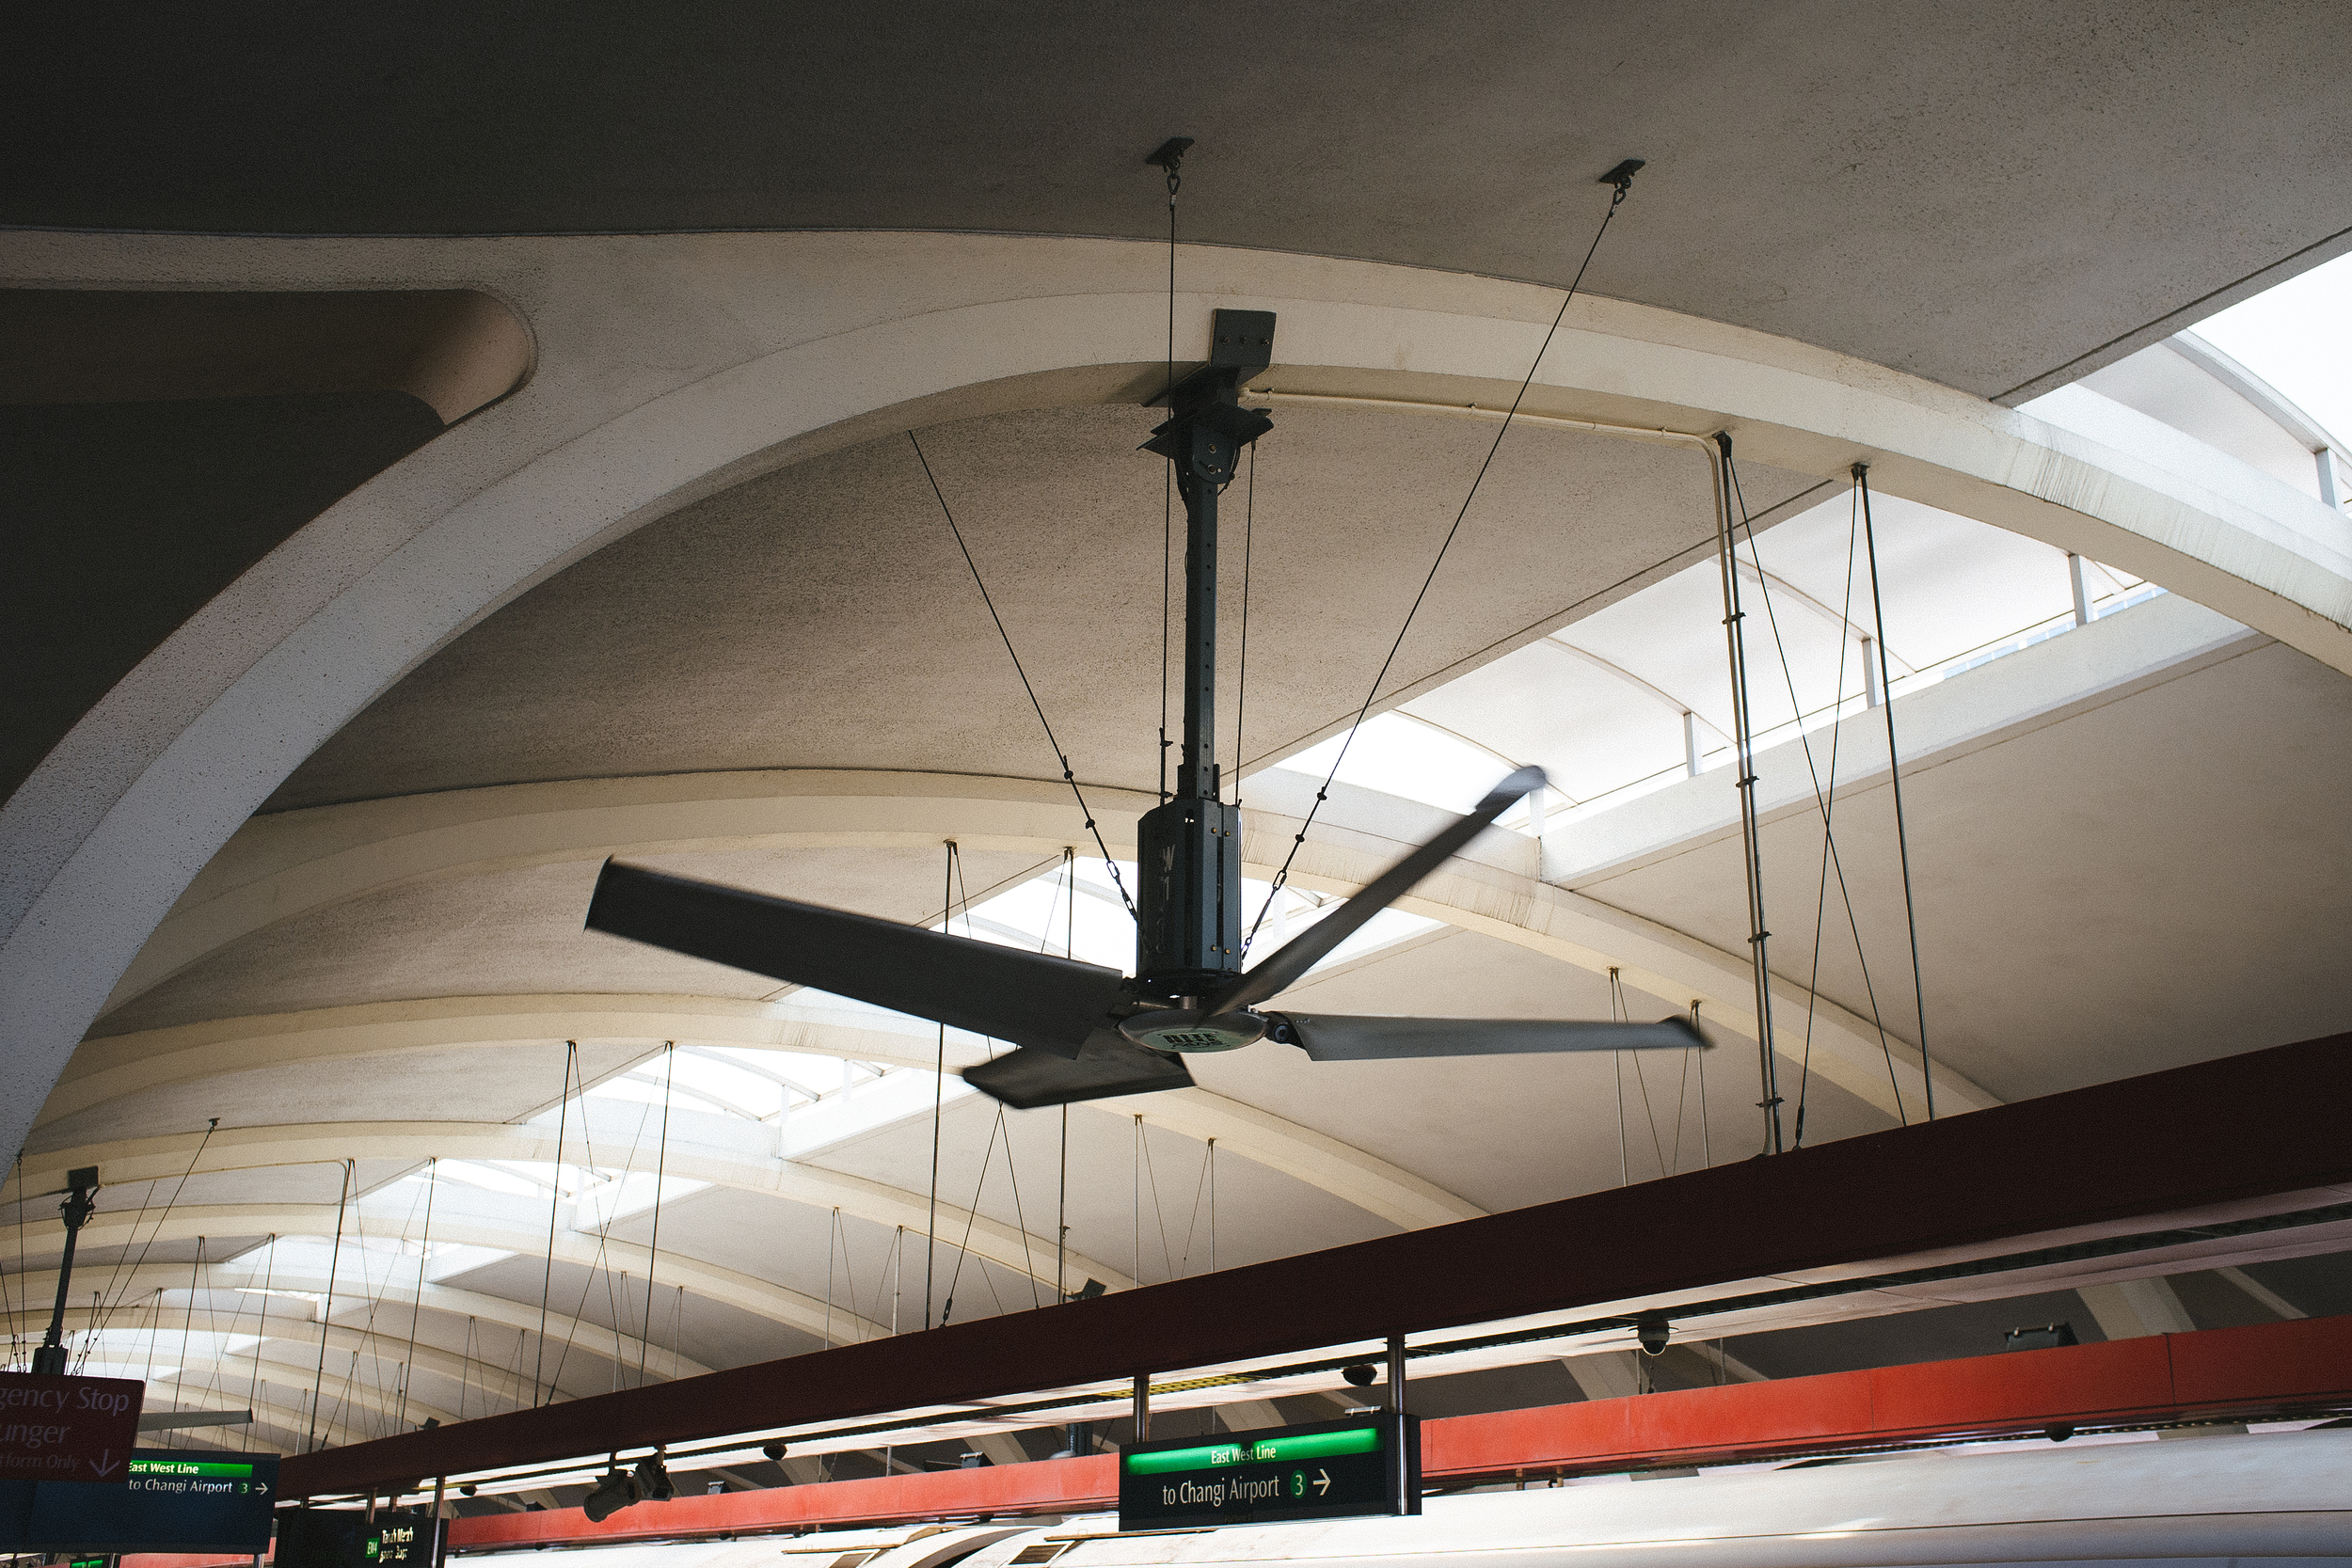 Picture: A large fan.